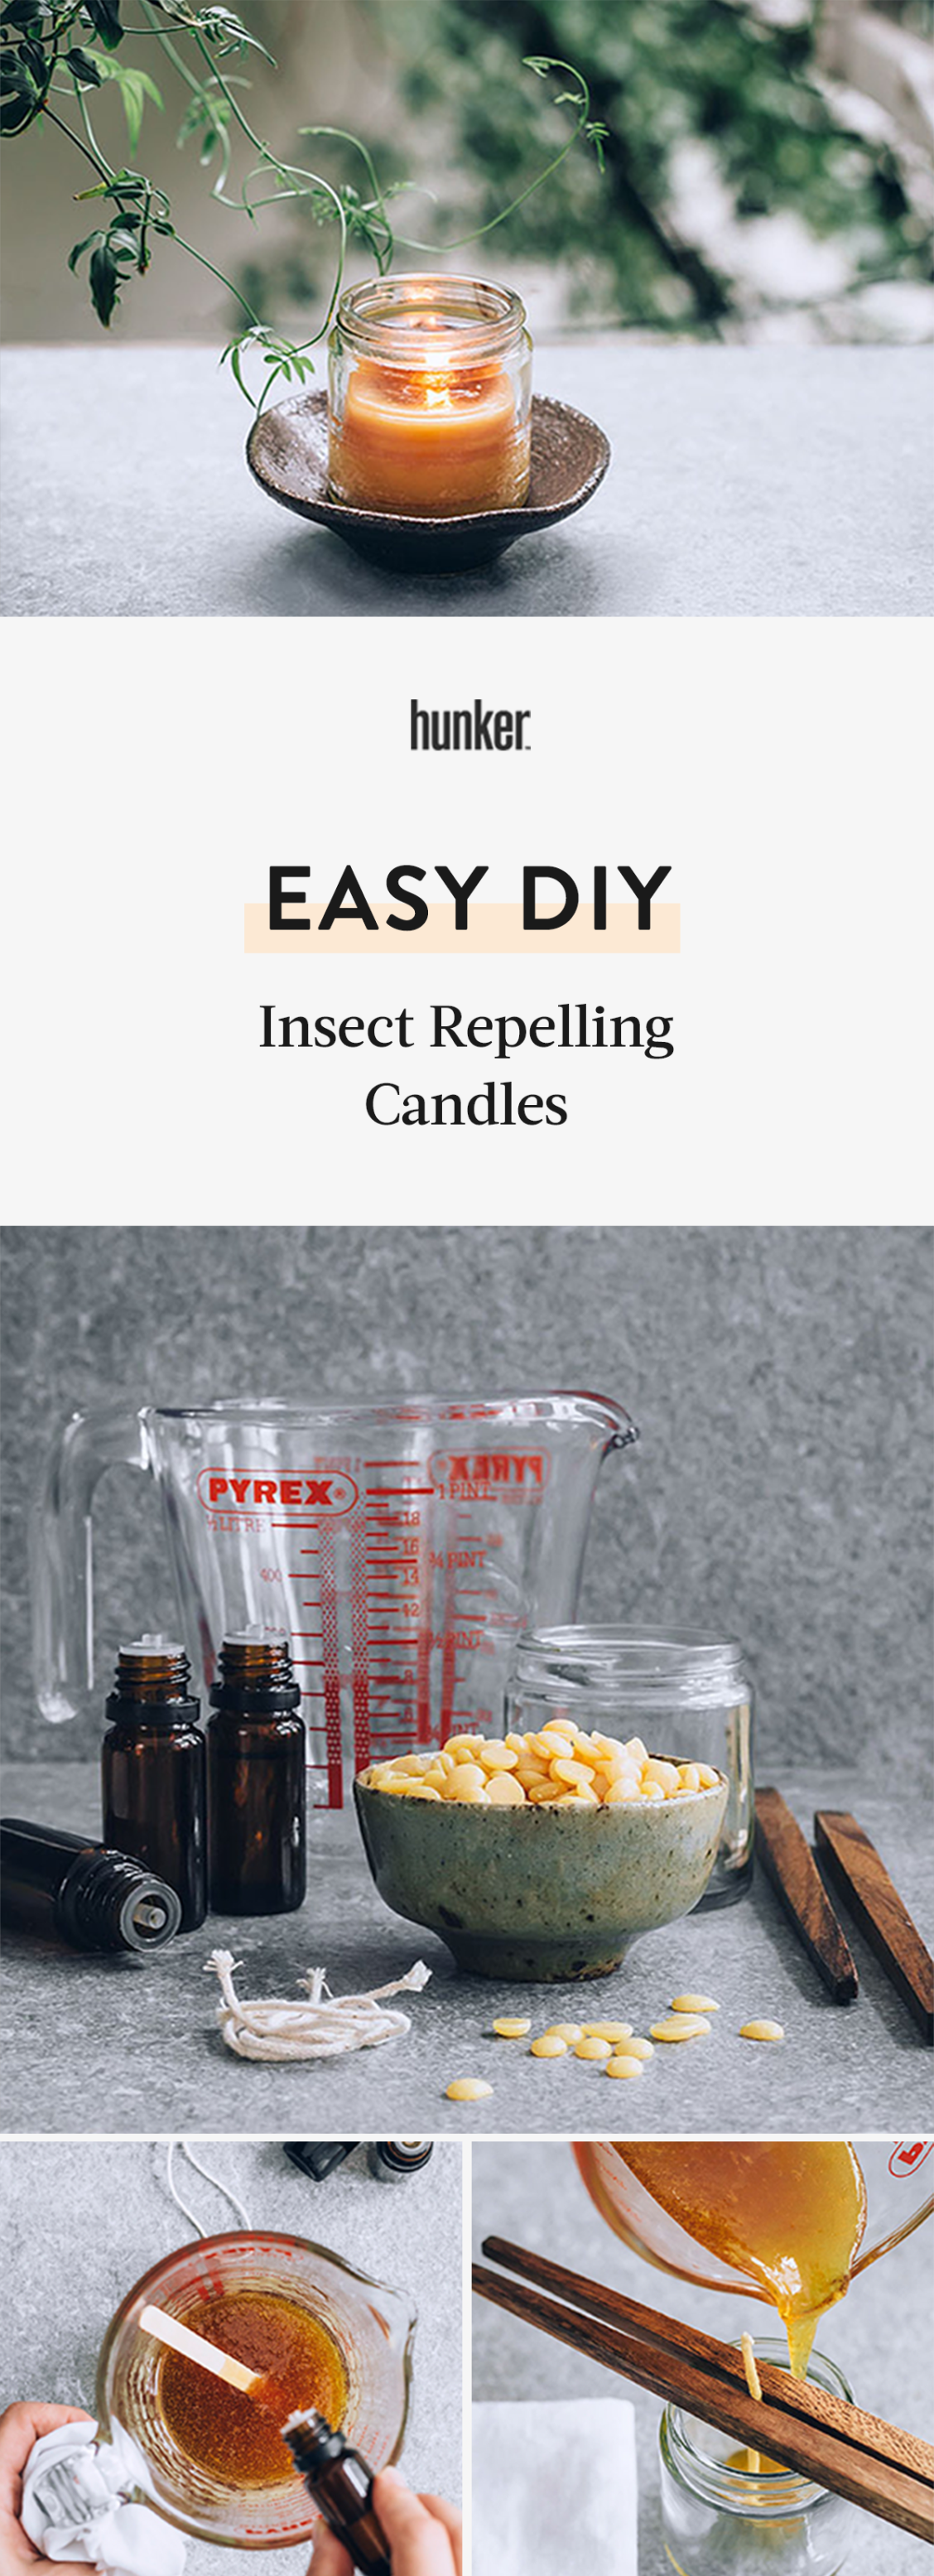 This DIY Candle Keeps Bugs Away on Your Patio or Balcony